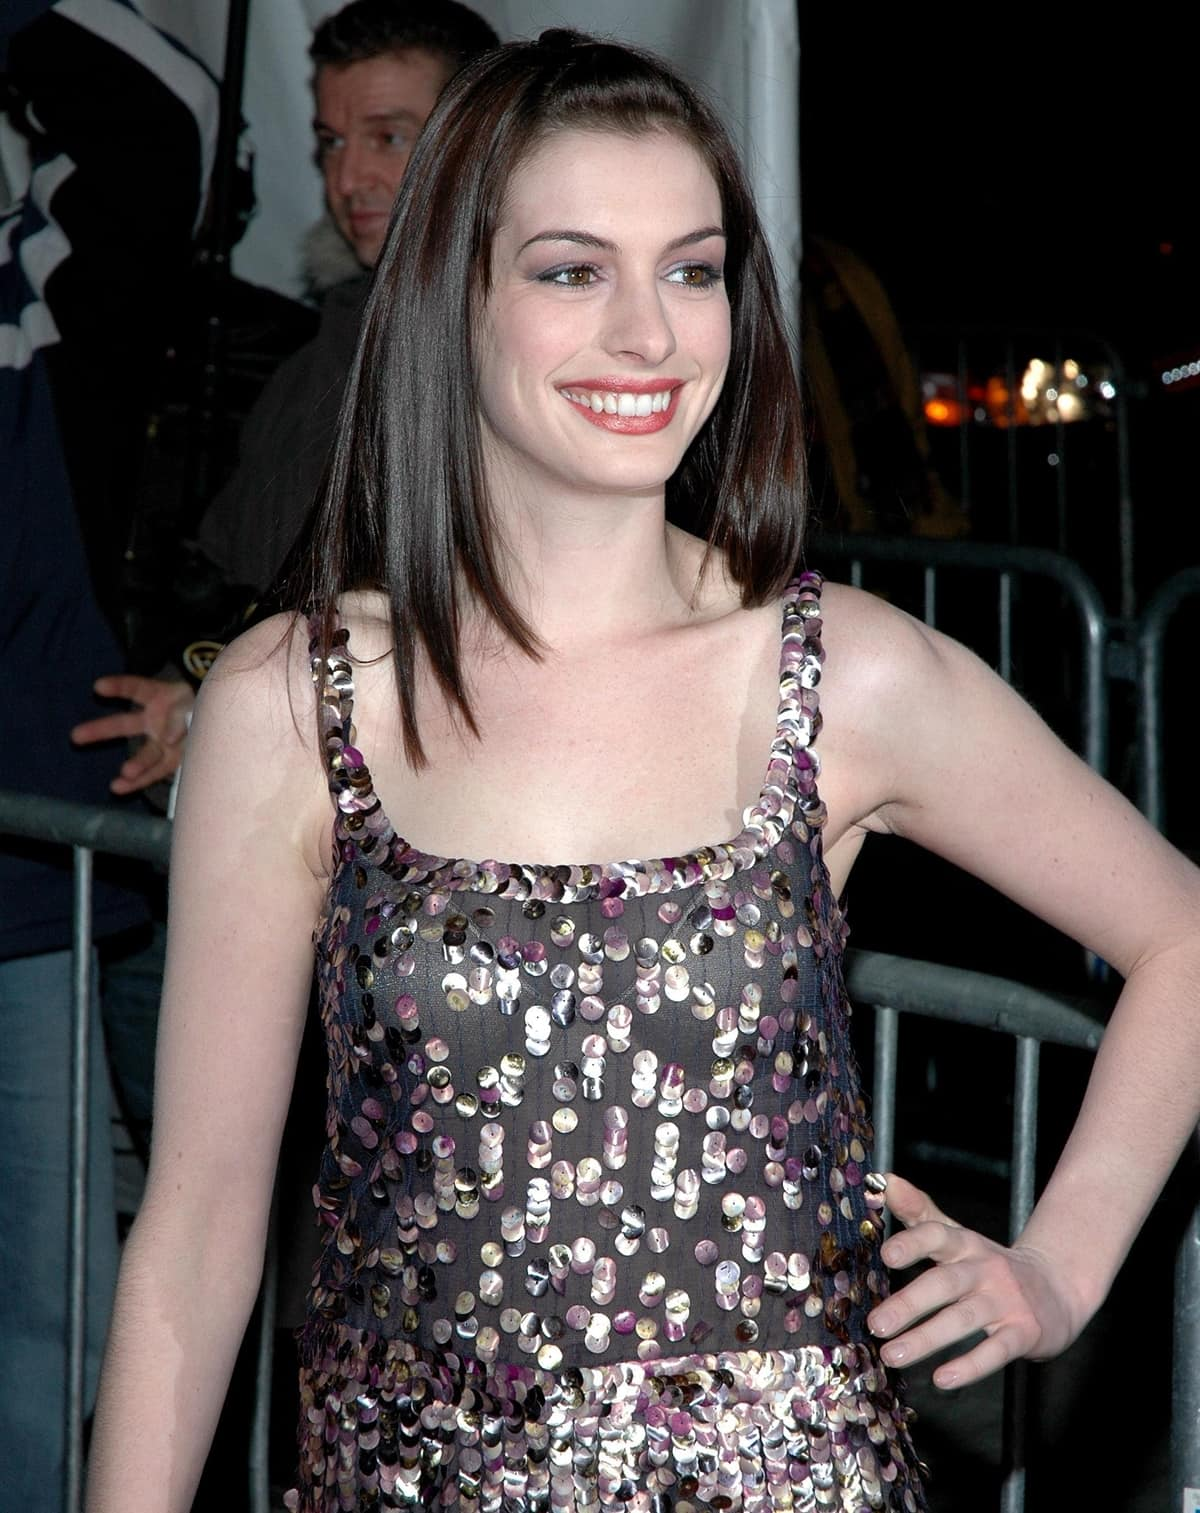 Anne Hathaway at the New York premiere of Brokeback Mountain